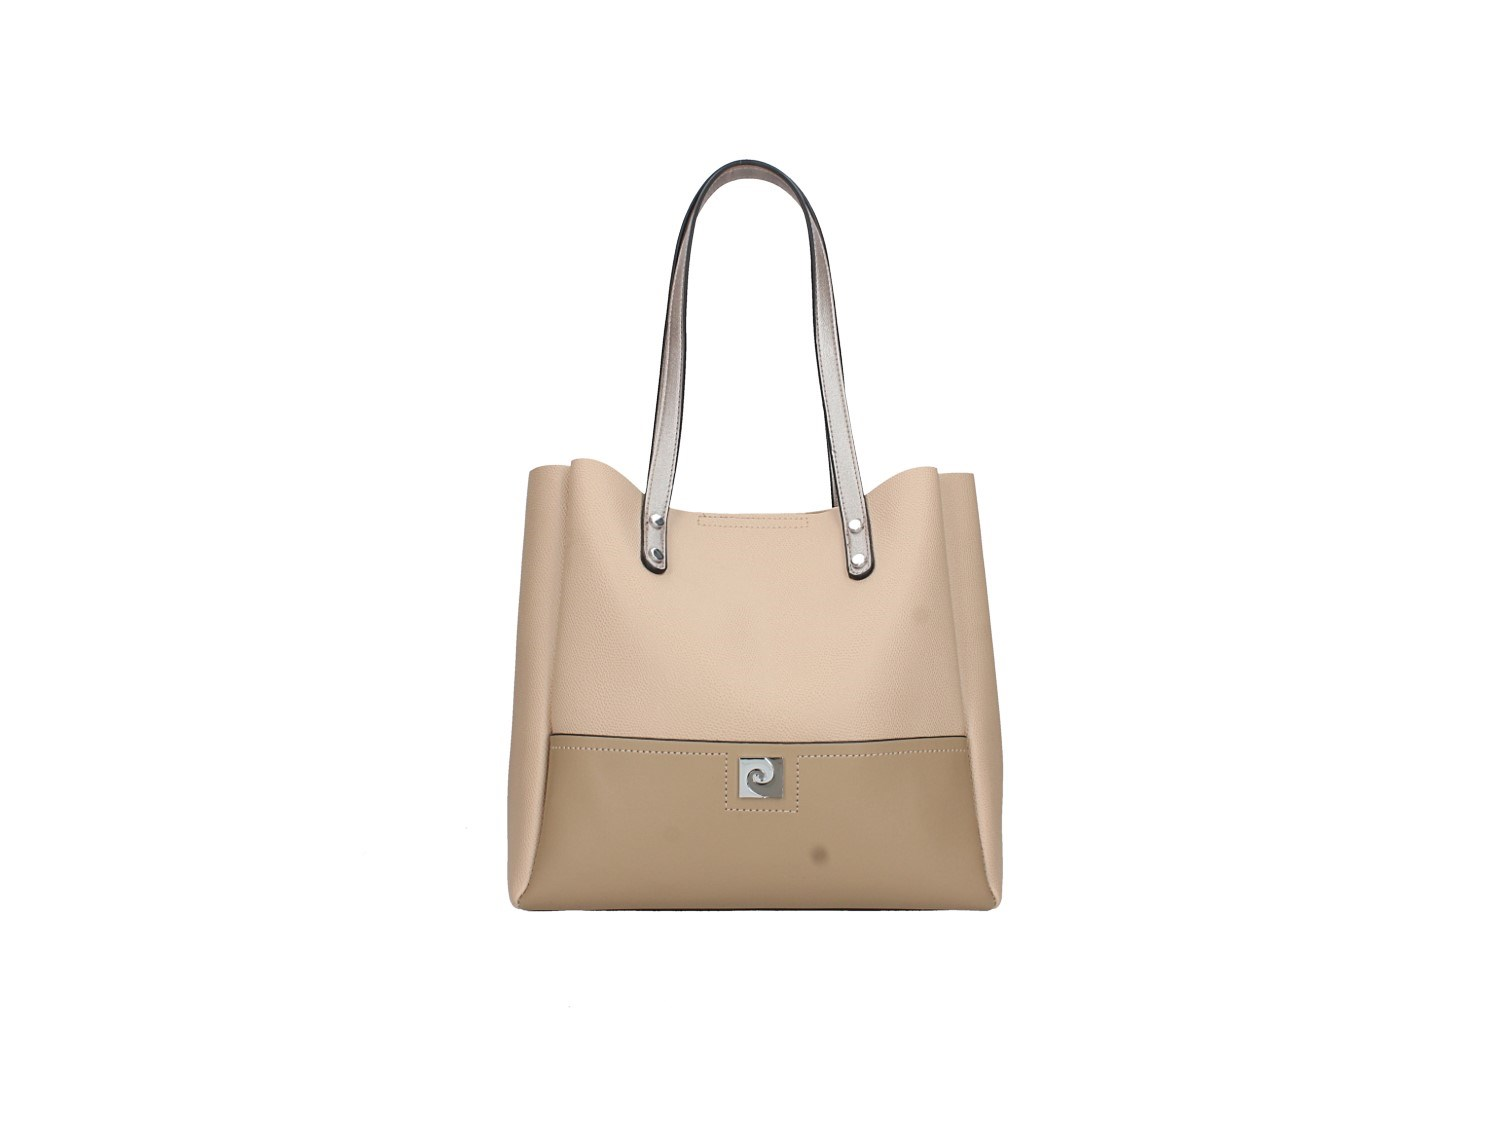 Pierre Cardin 6922 Sand Accessories Women bag